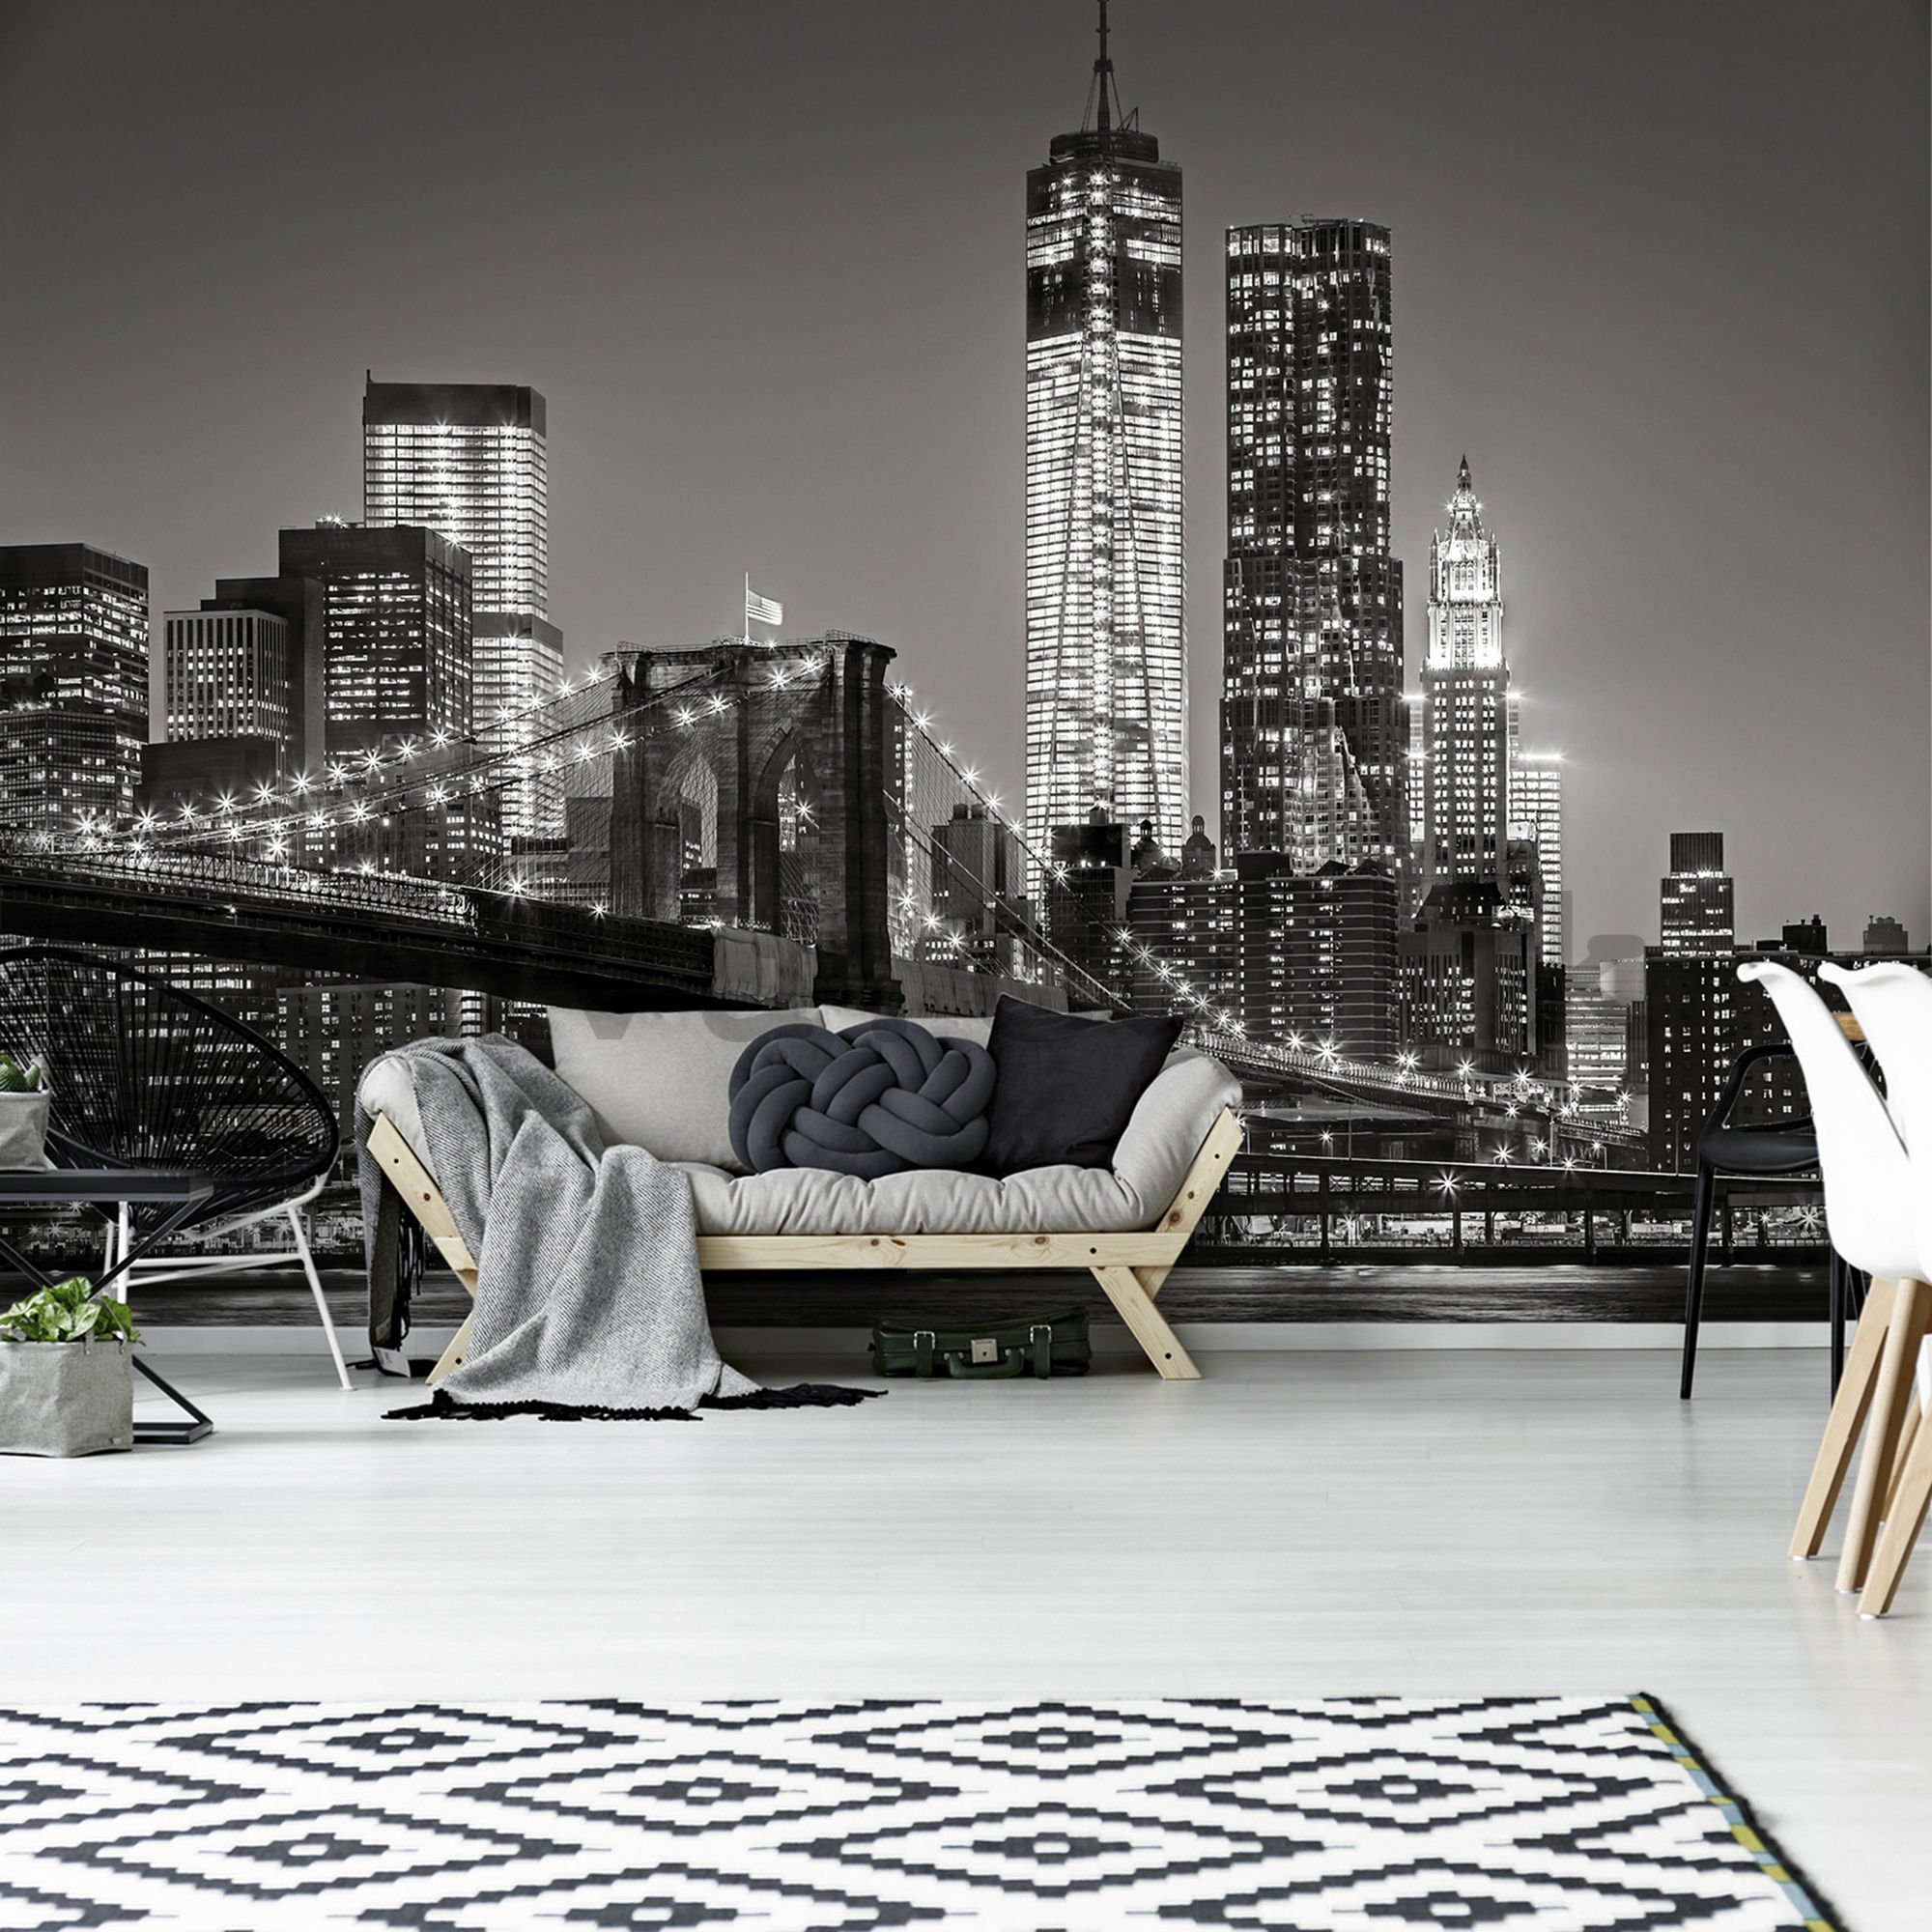 Wall mural: Brooklyn Bridge (4) - 184x254 cm